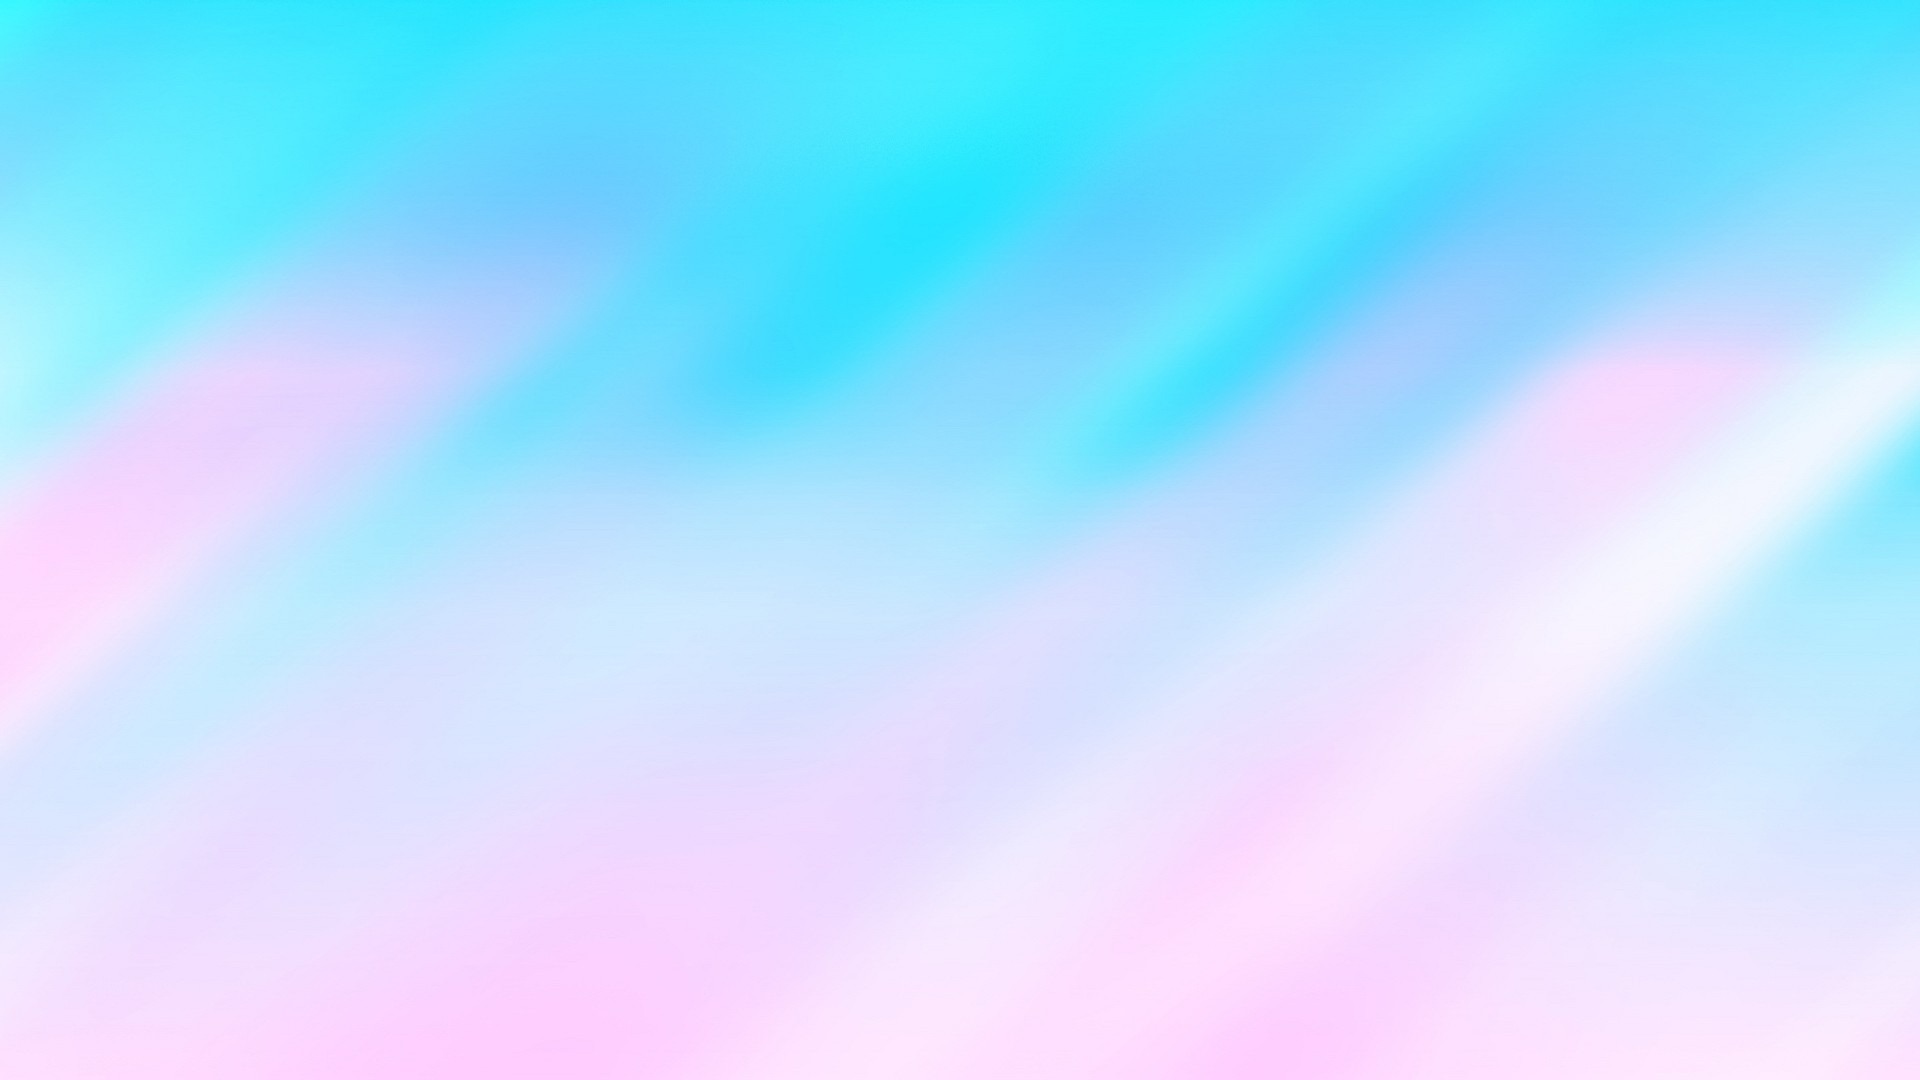 Pastel wallpaper download free amazing full hd backgrounds for desktop computers and - Pastel background hd ...